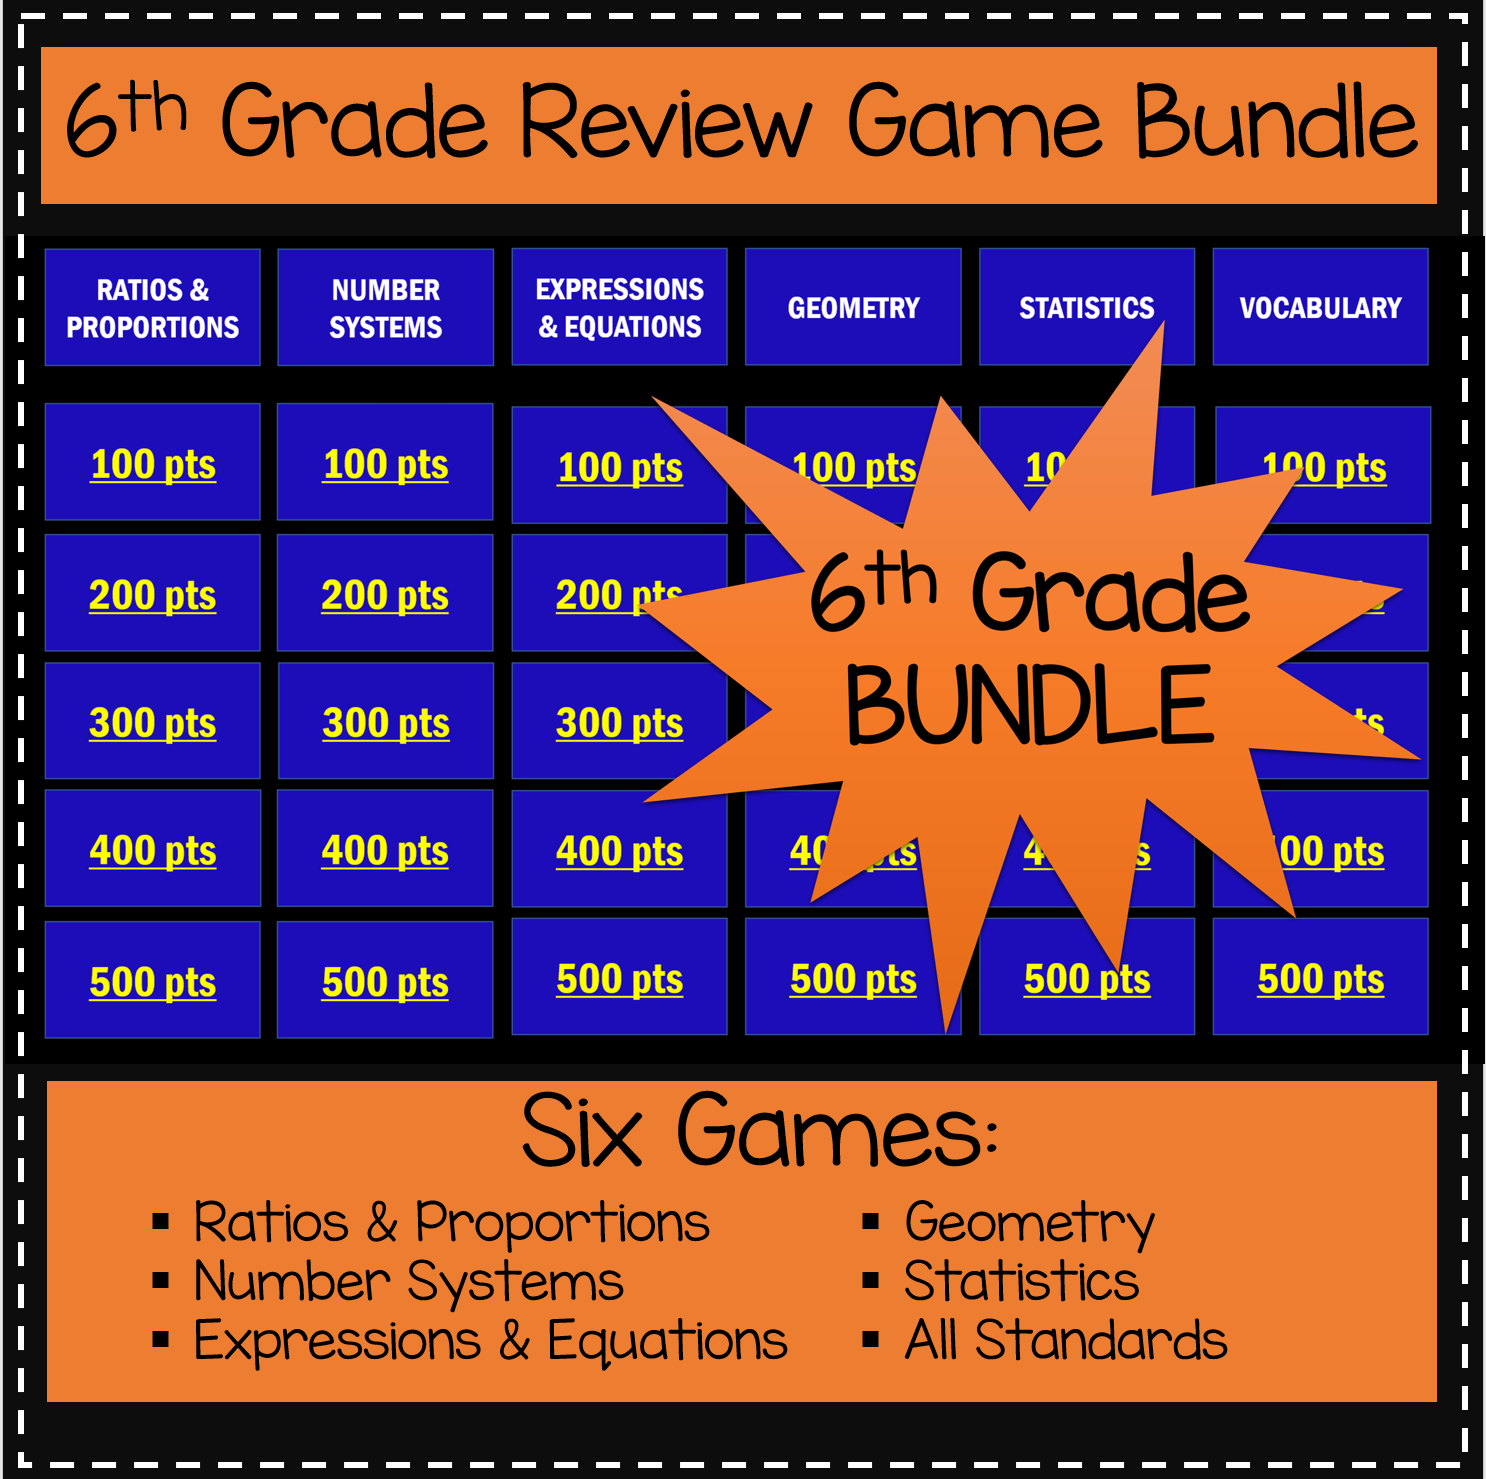 6th Grade Game Show Review Games BUNDLE Relationship